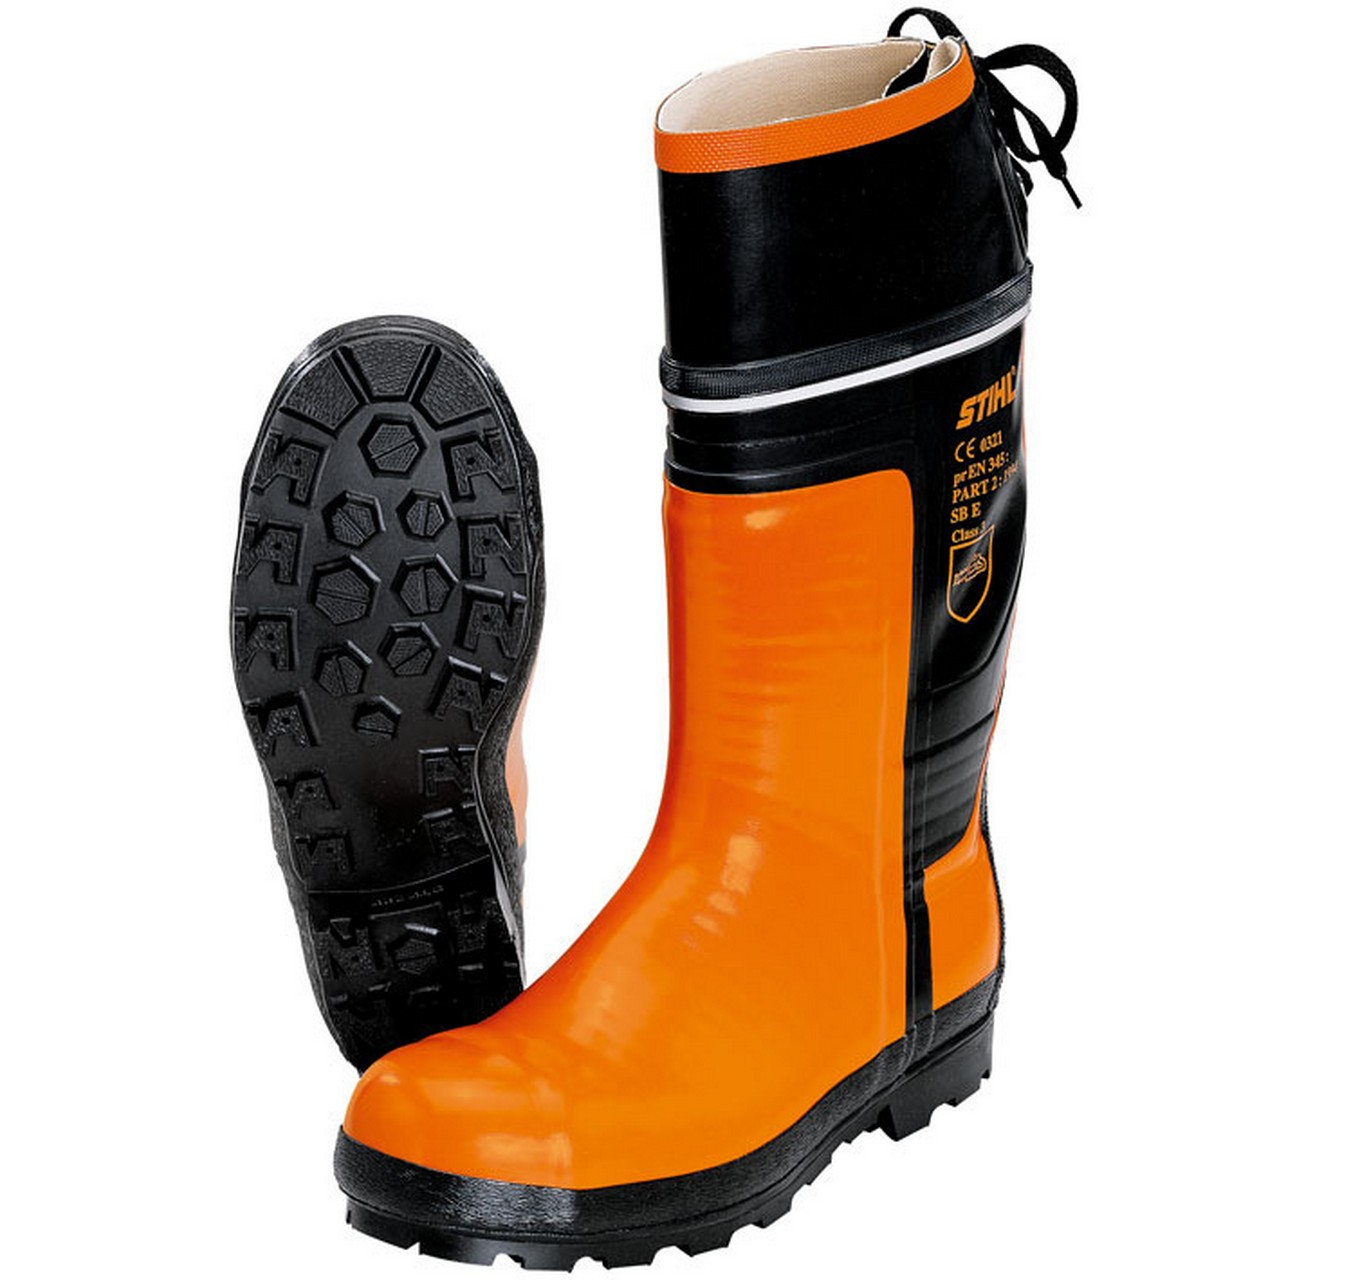 Special Rubber Boots Size 5.5